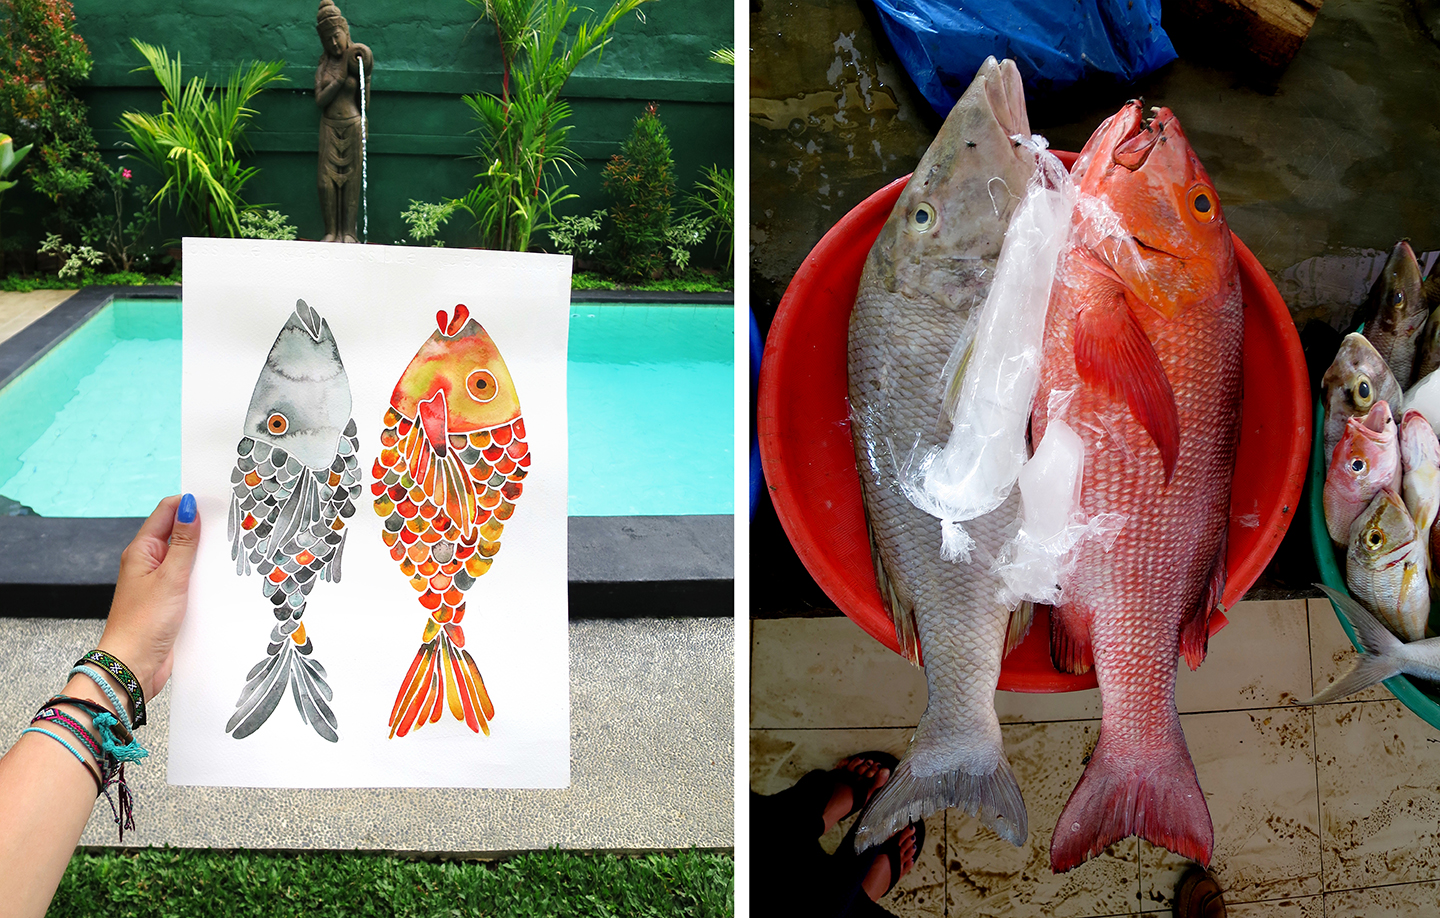 Artistic inspiration can come from the unlikeliest of places. Like the fish market in Labuan Bajo.